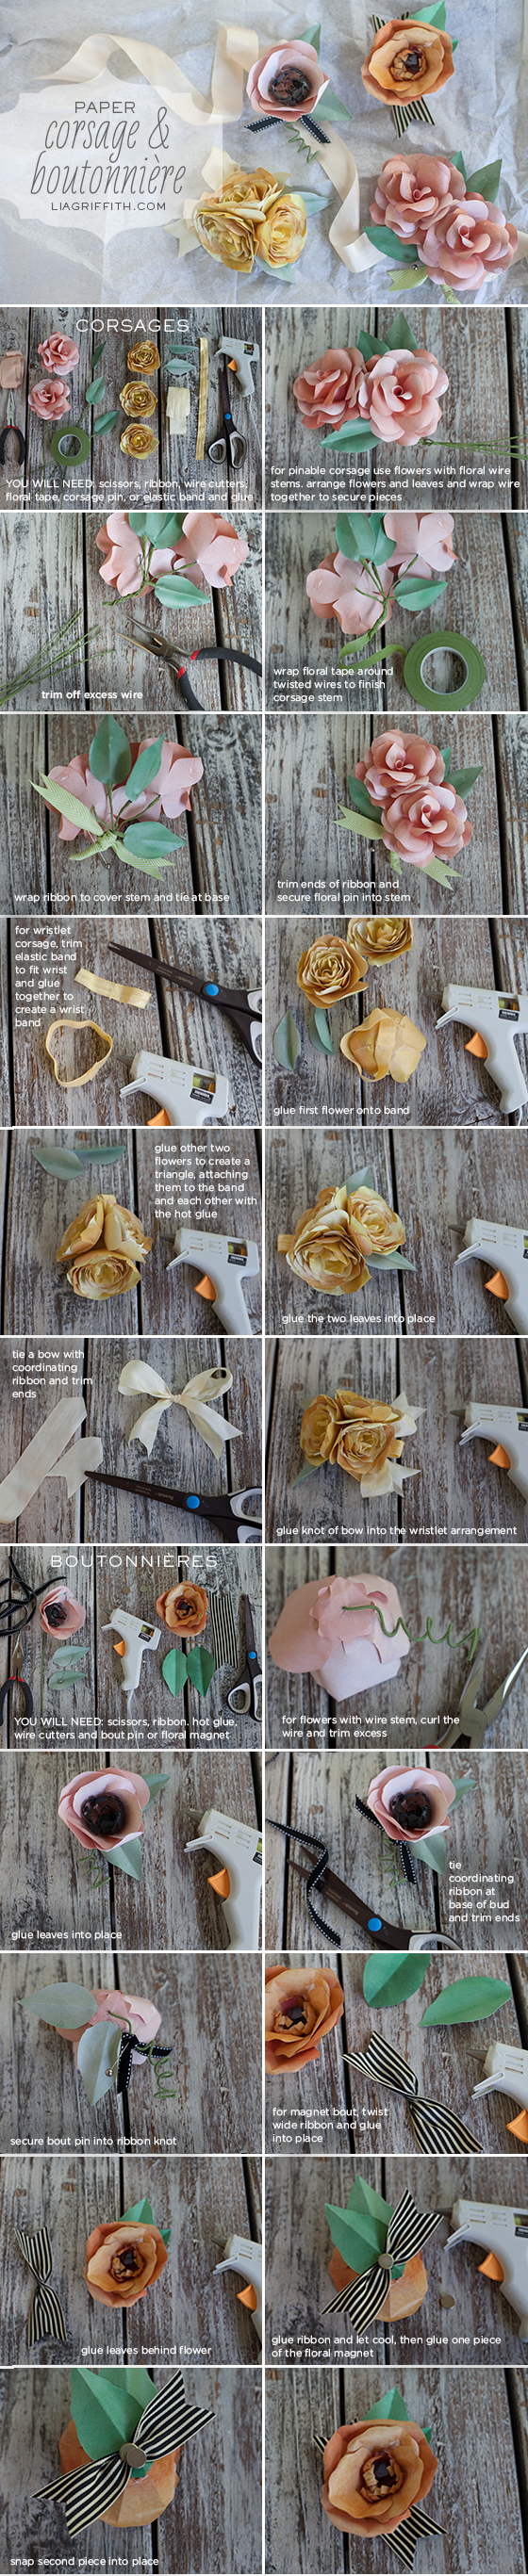 Paper DIY Corsage and Boutonniere